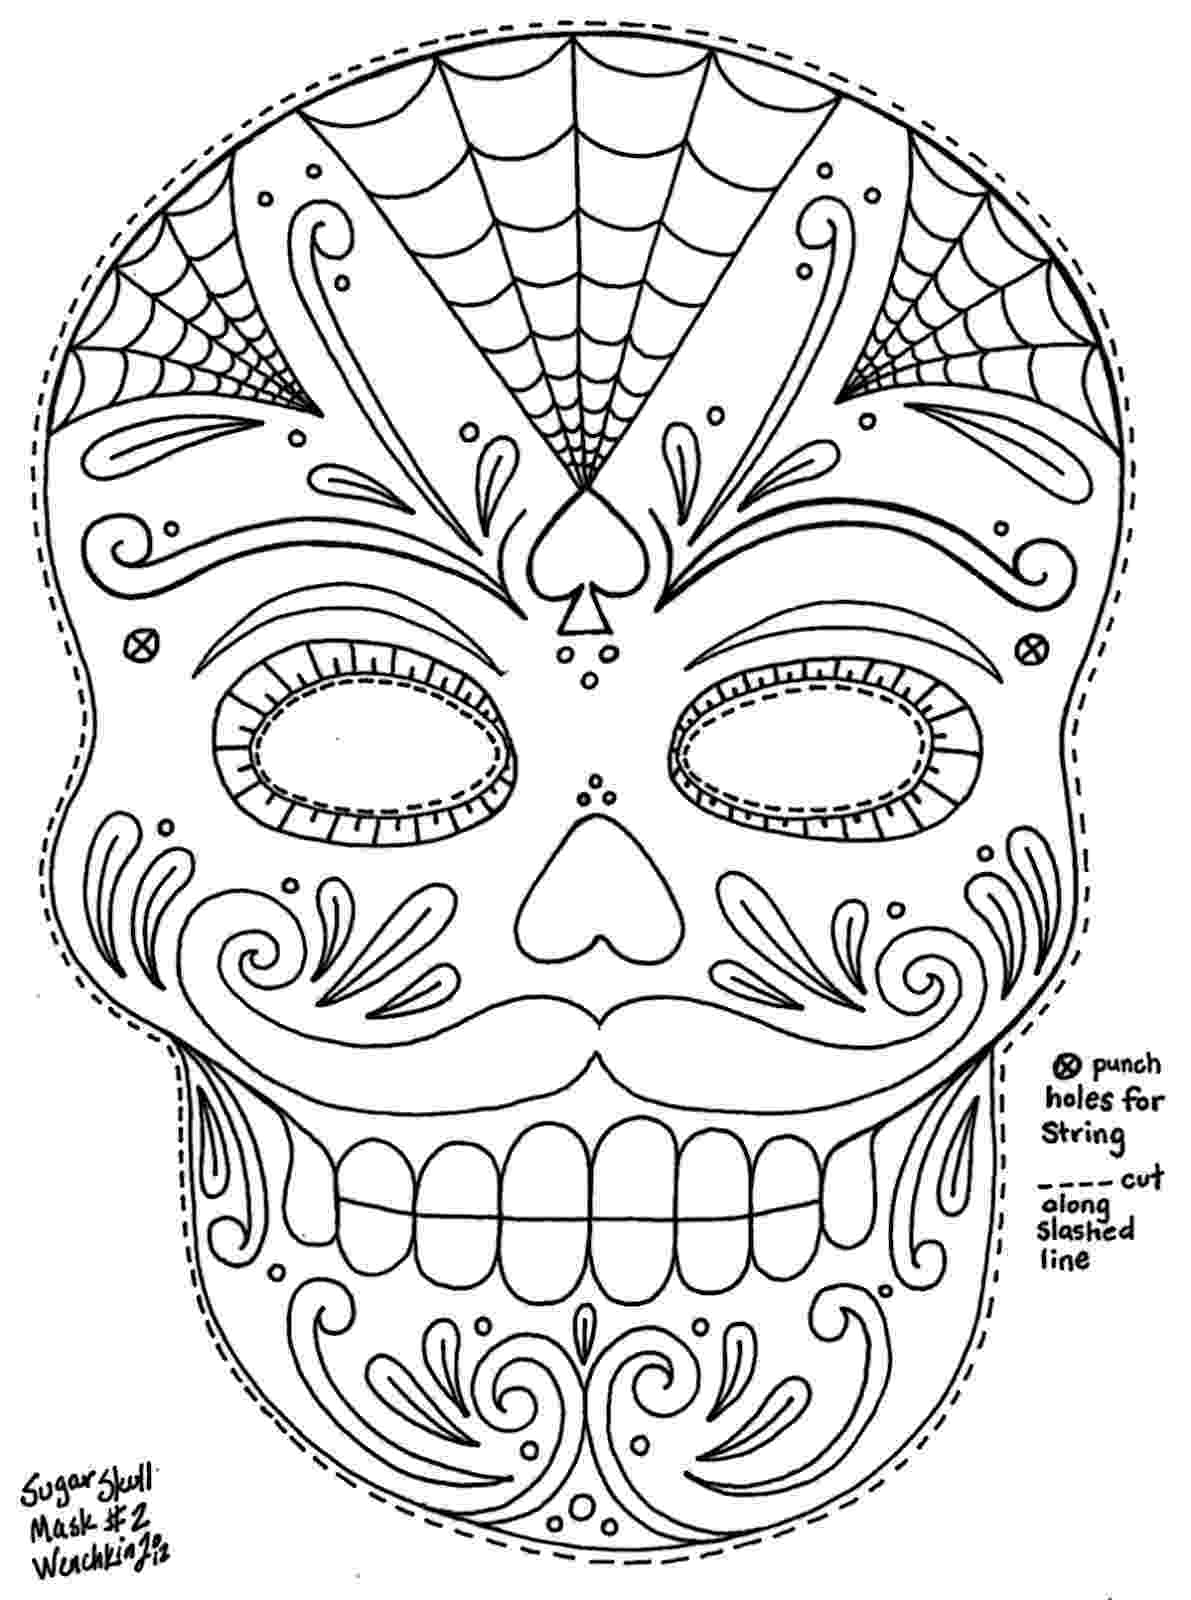 coloring masks yucca flats nm wenchkin39s coloring pages moustached masks coloring